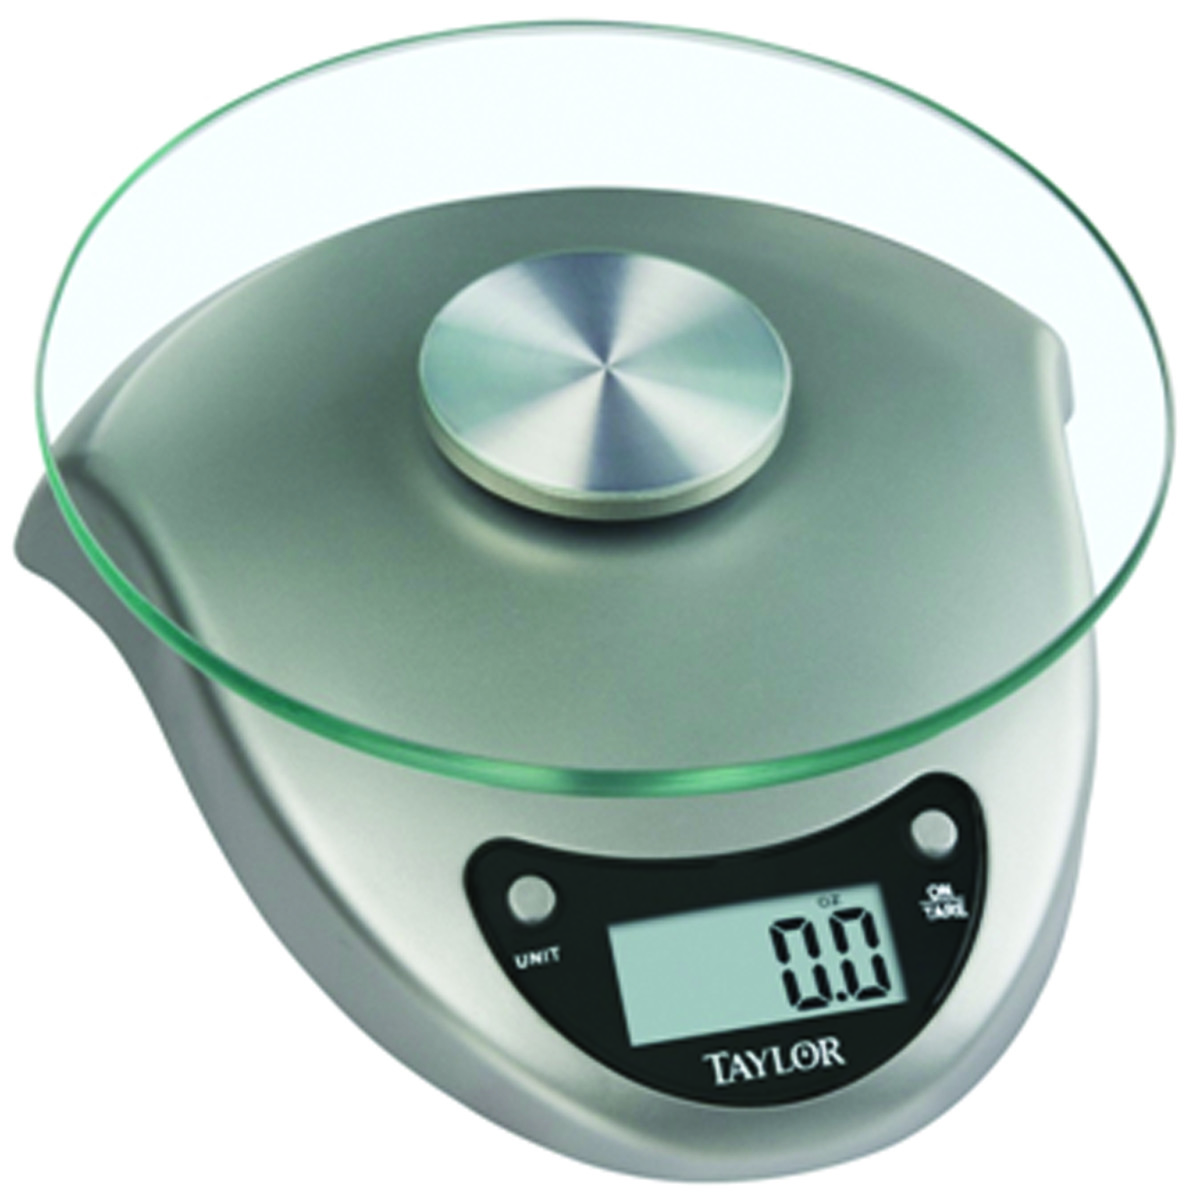 Taylor 3831S Scale Kitchen Silver 6 Pound